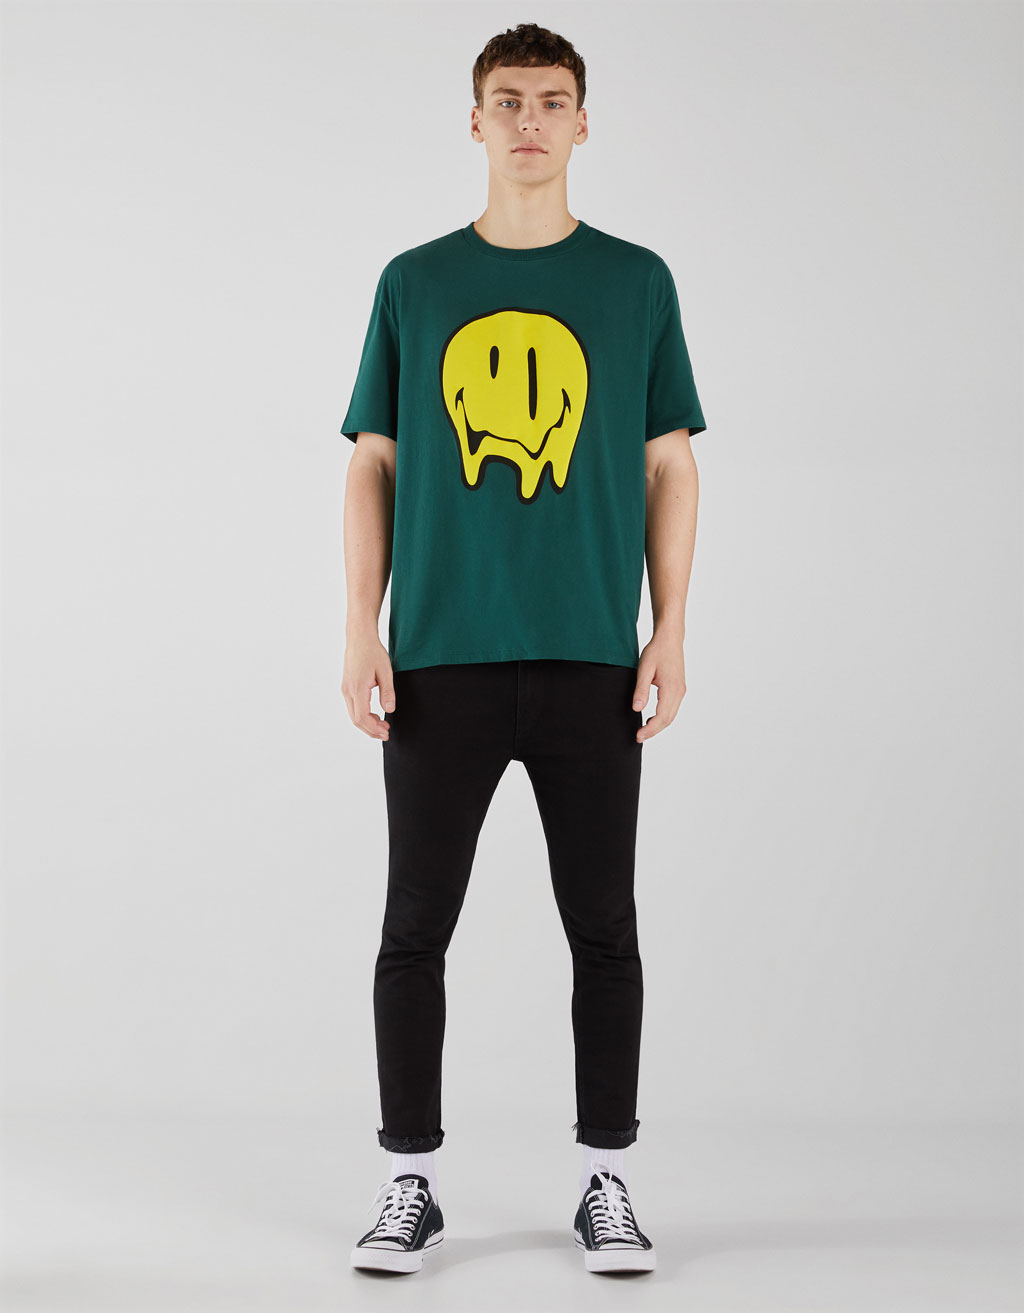 T-shirt com estampado Smiley